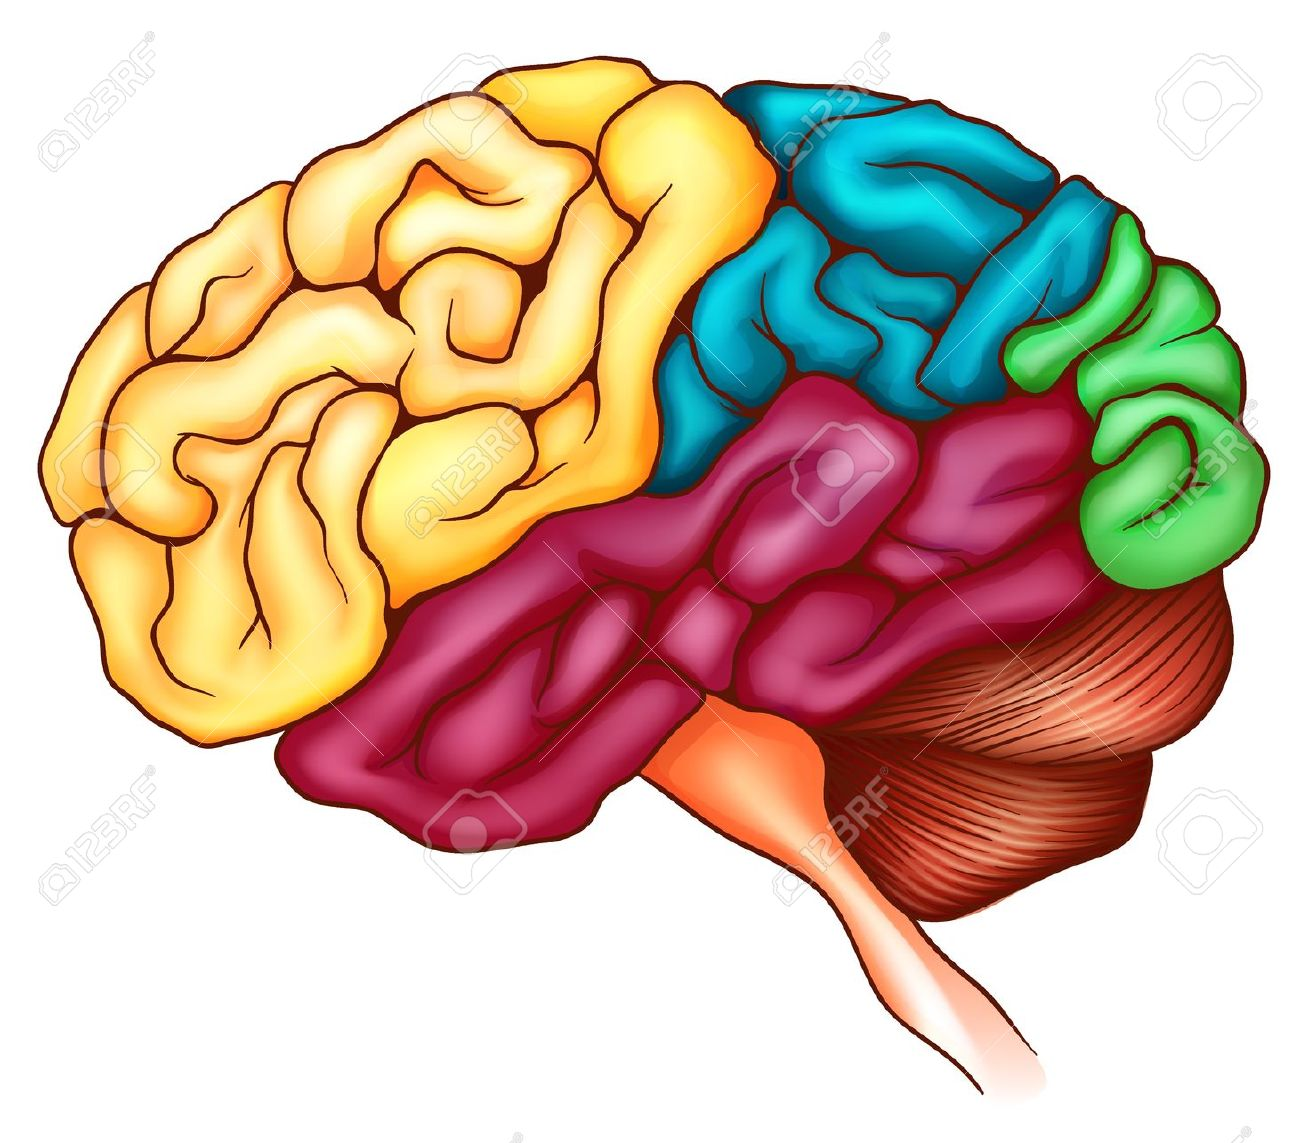 An Illustration Of The Human Brain Royalty Free Cliparts, Vectors.